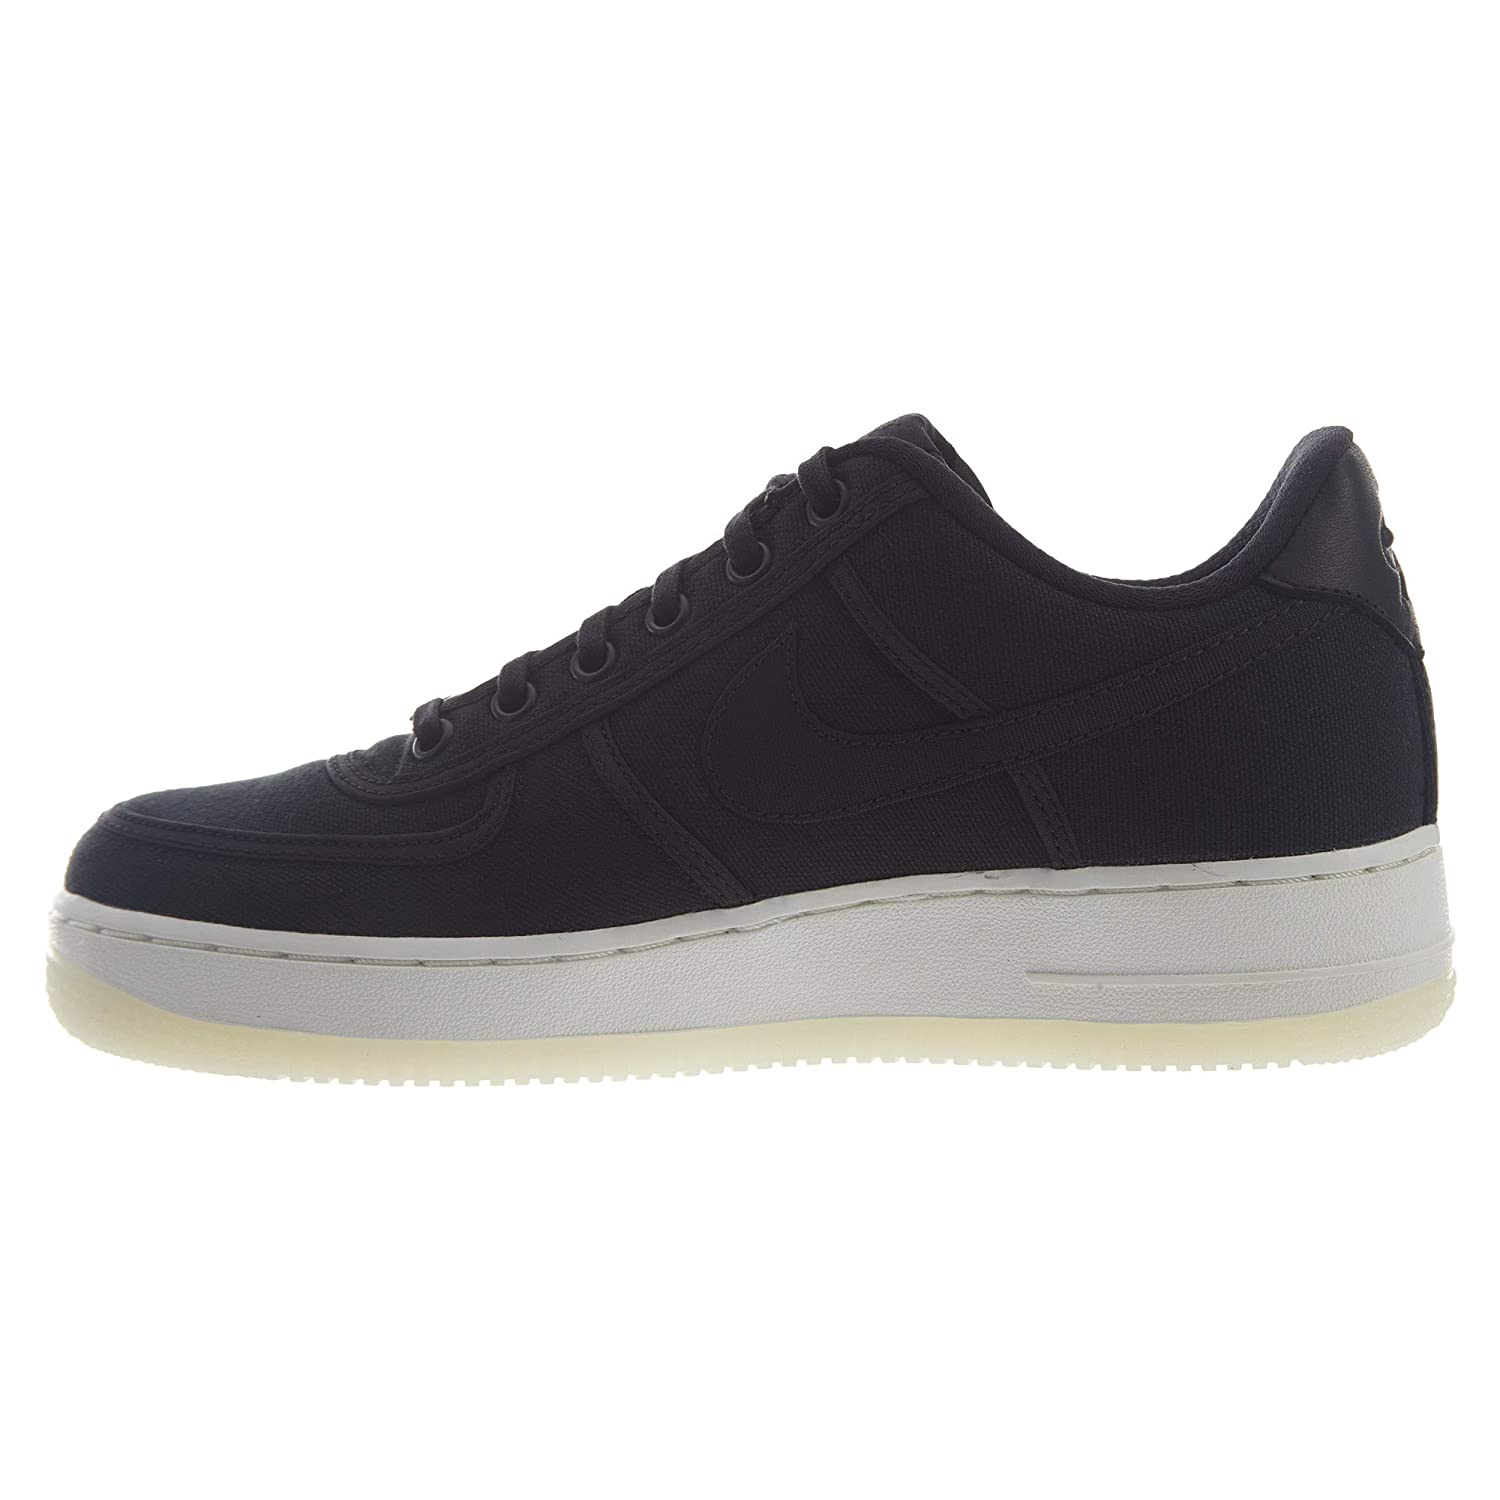 detailed pictures 5735c 3881e Amazon.com   Nike Air Force 1 Low Retro Qs CNVS Mens   Fashion Sneakers